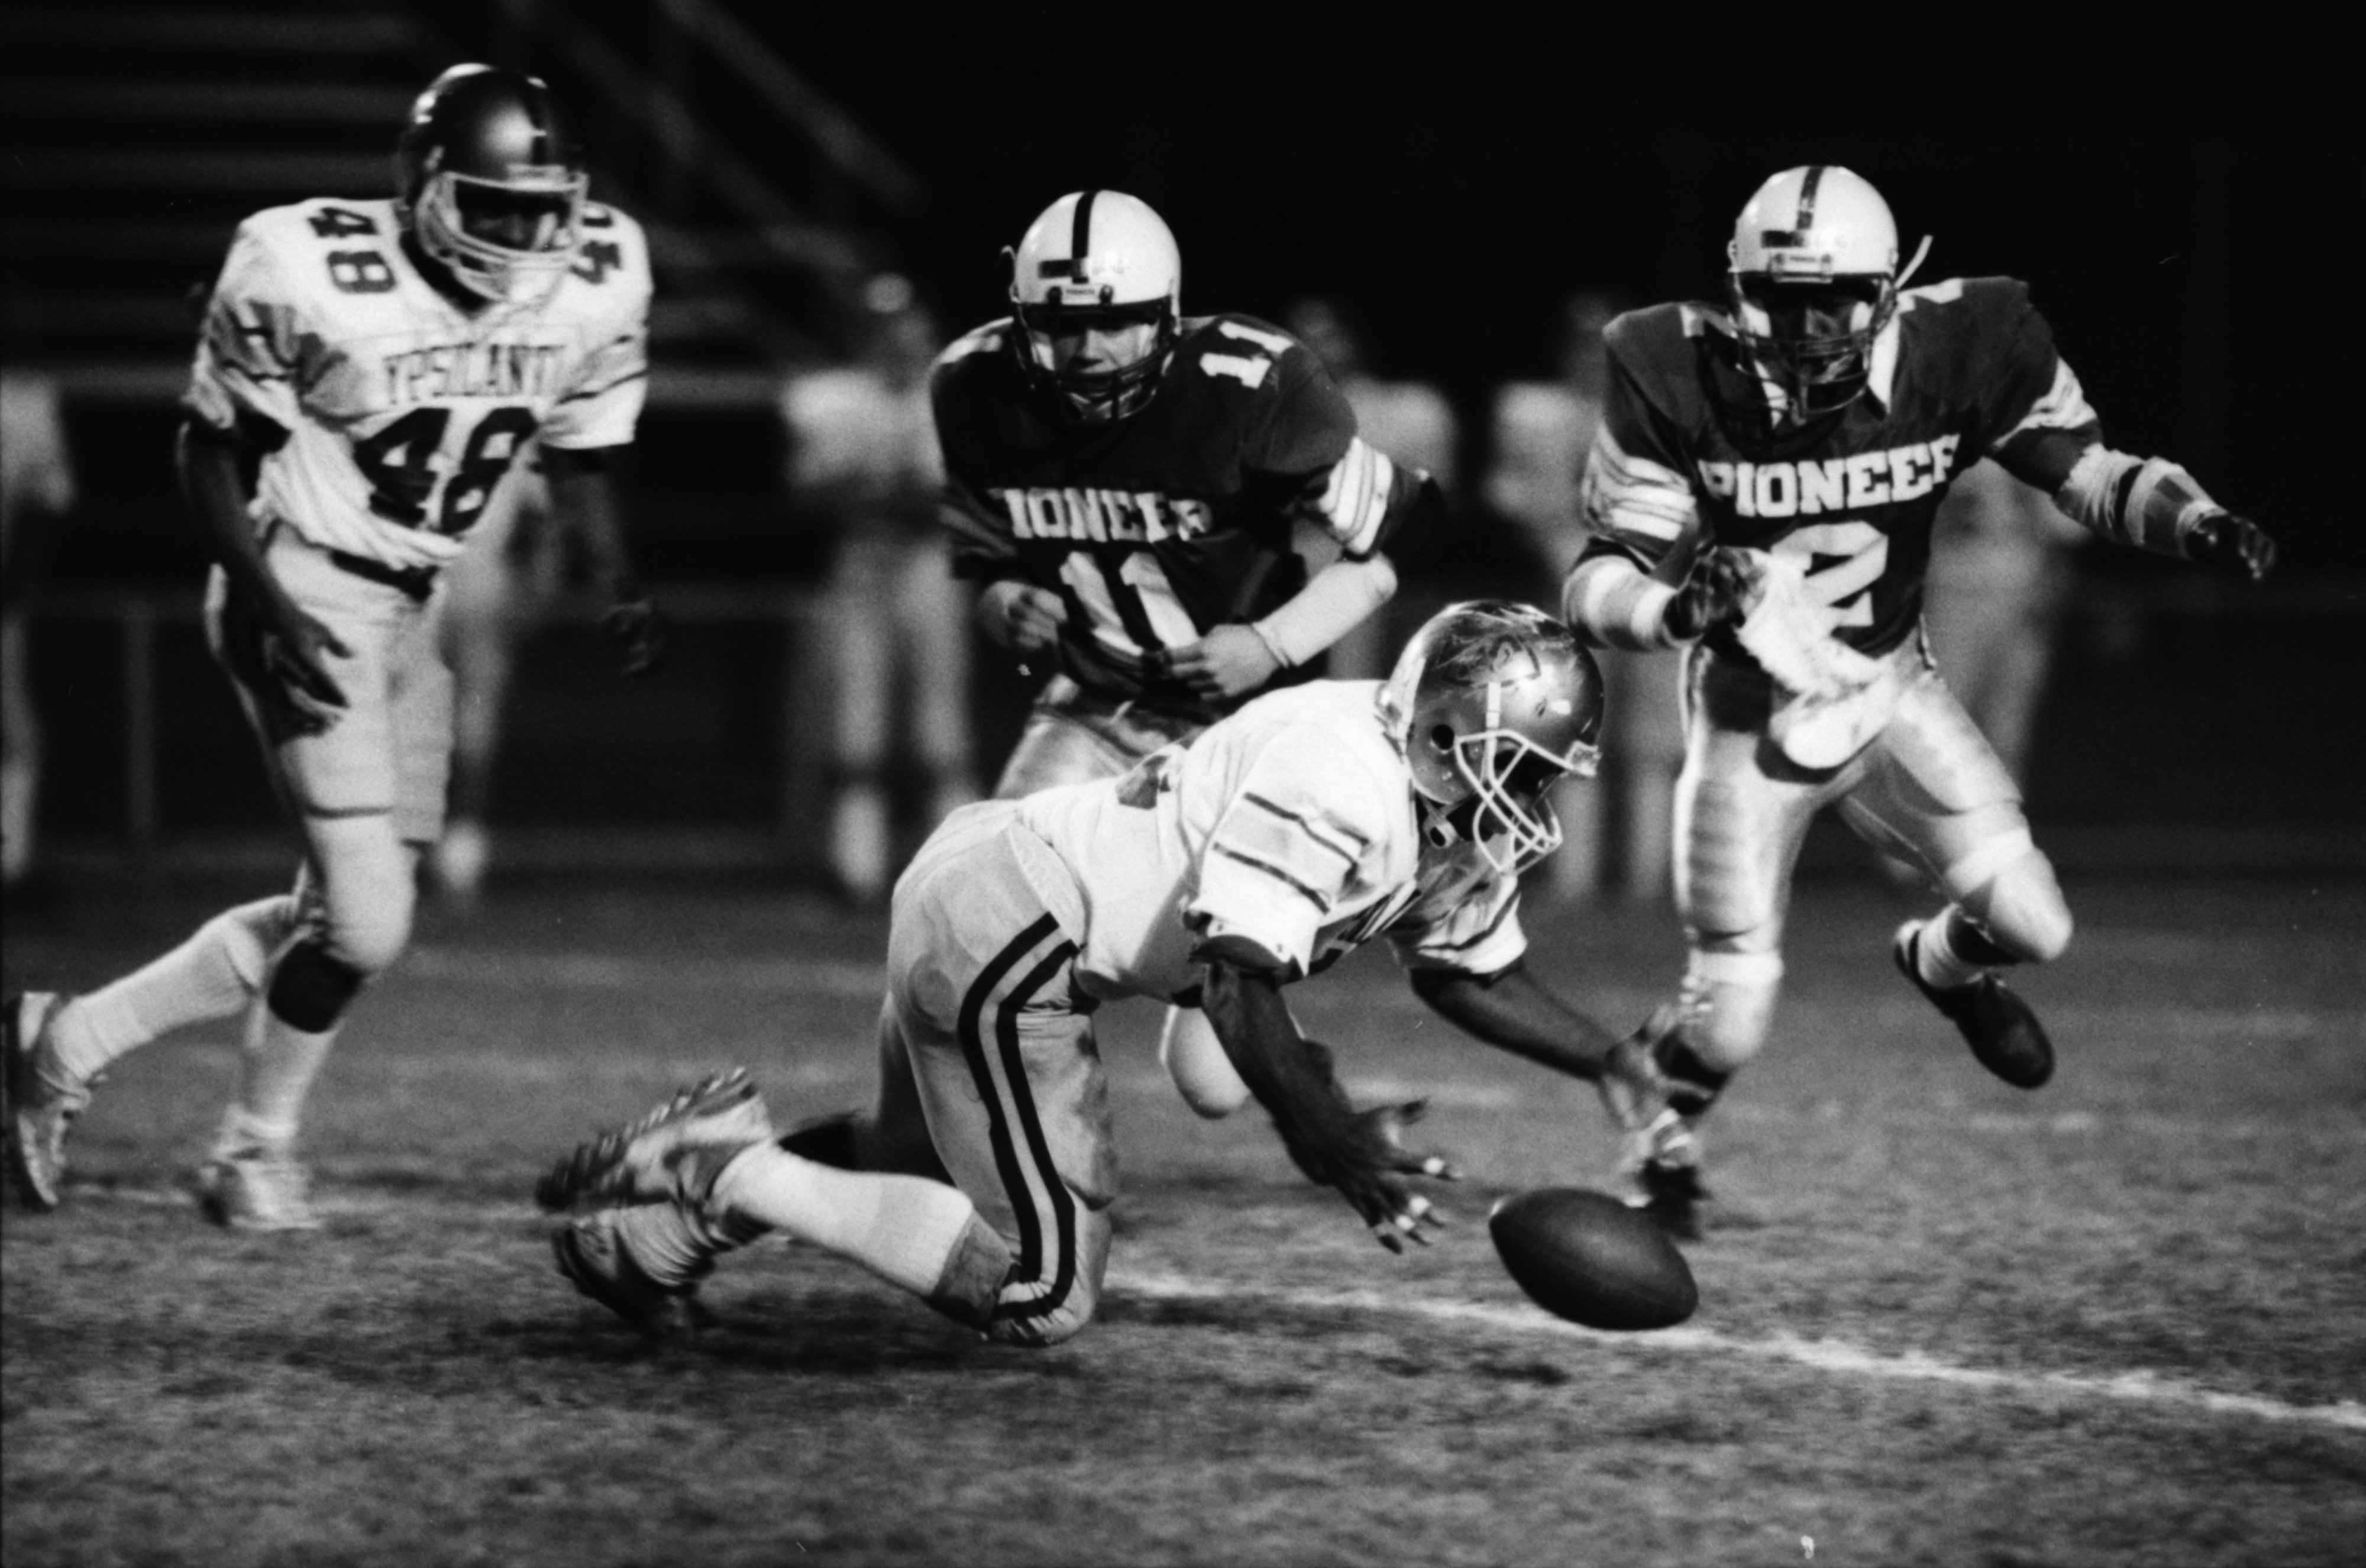 Pioneers Capitalize on Ypsilanti's Fumble in 17-7 Win, October 1987 image